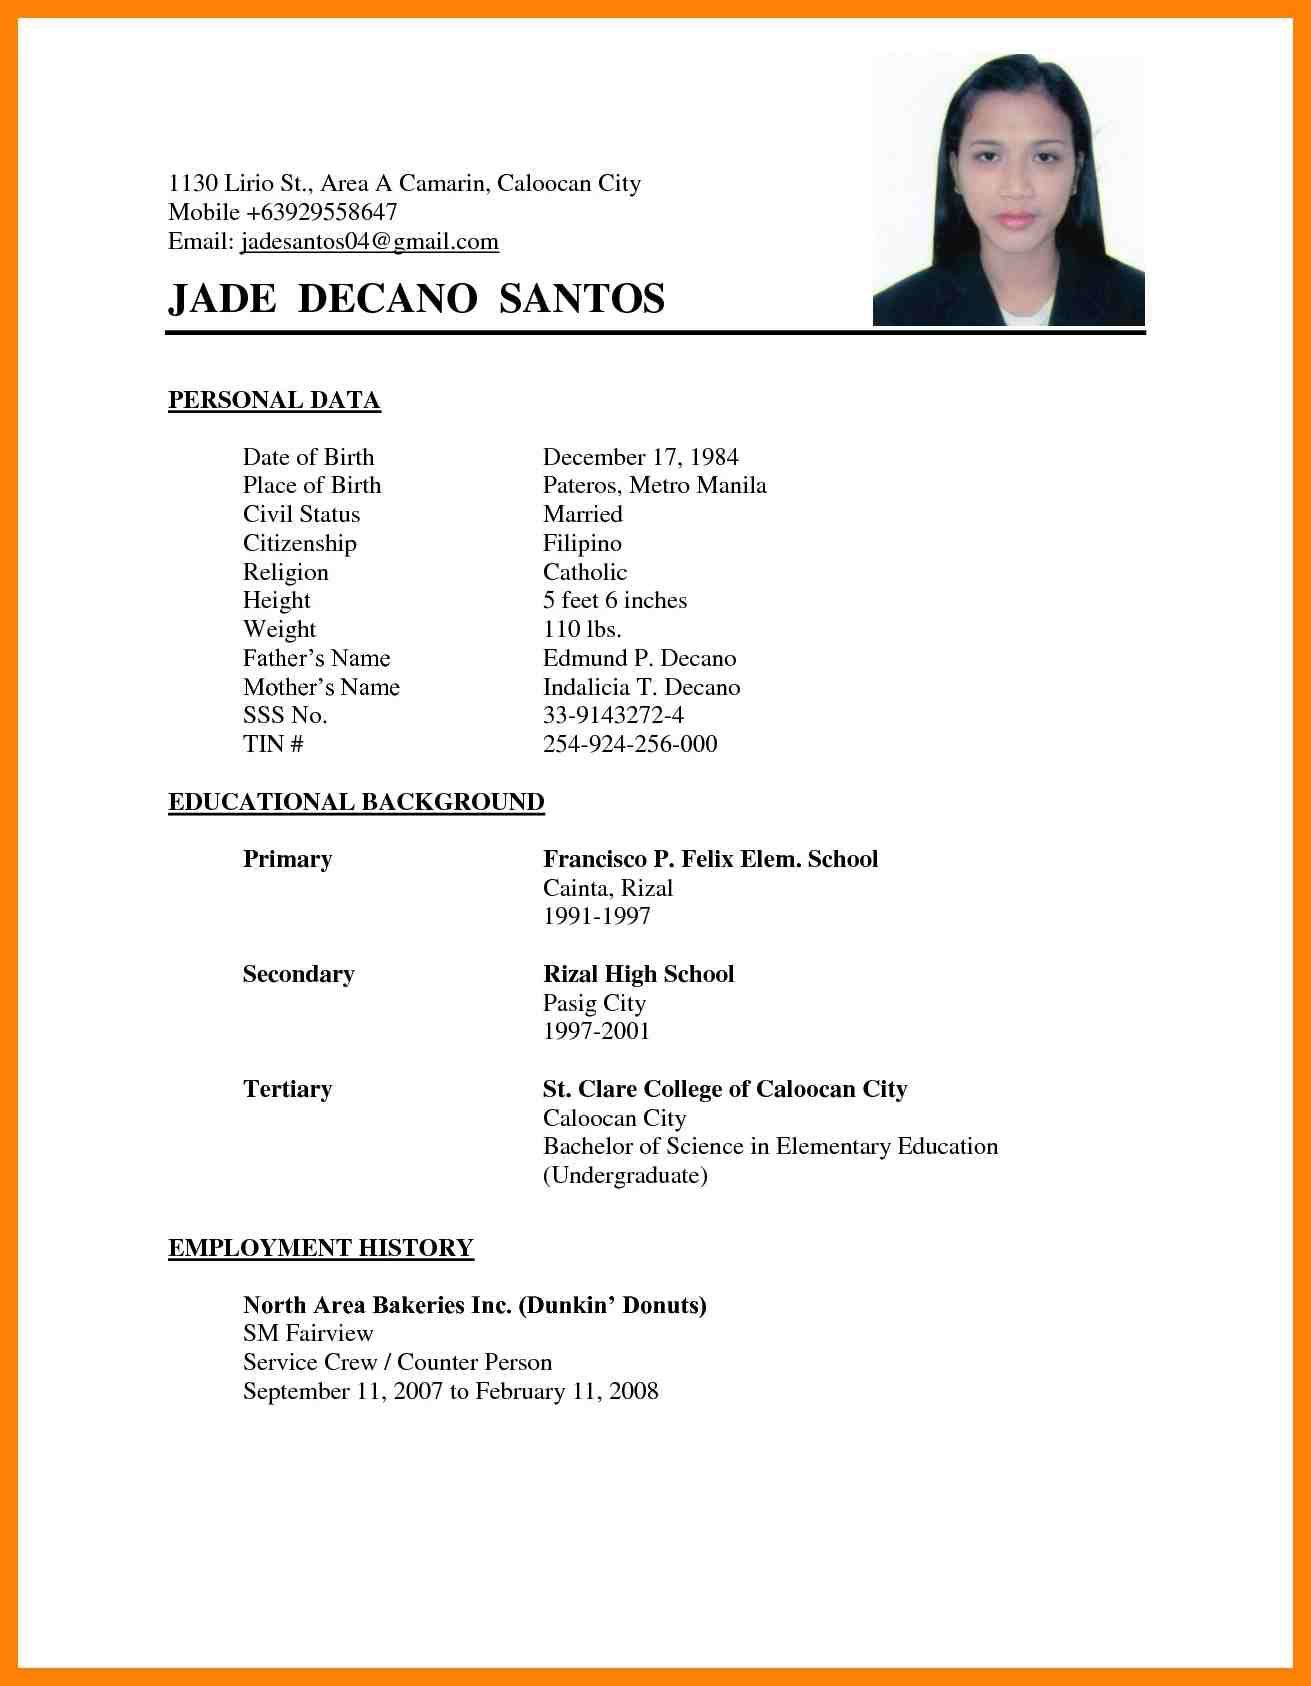 7 Biodata For Marriage Format Cook Resume think down